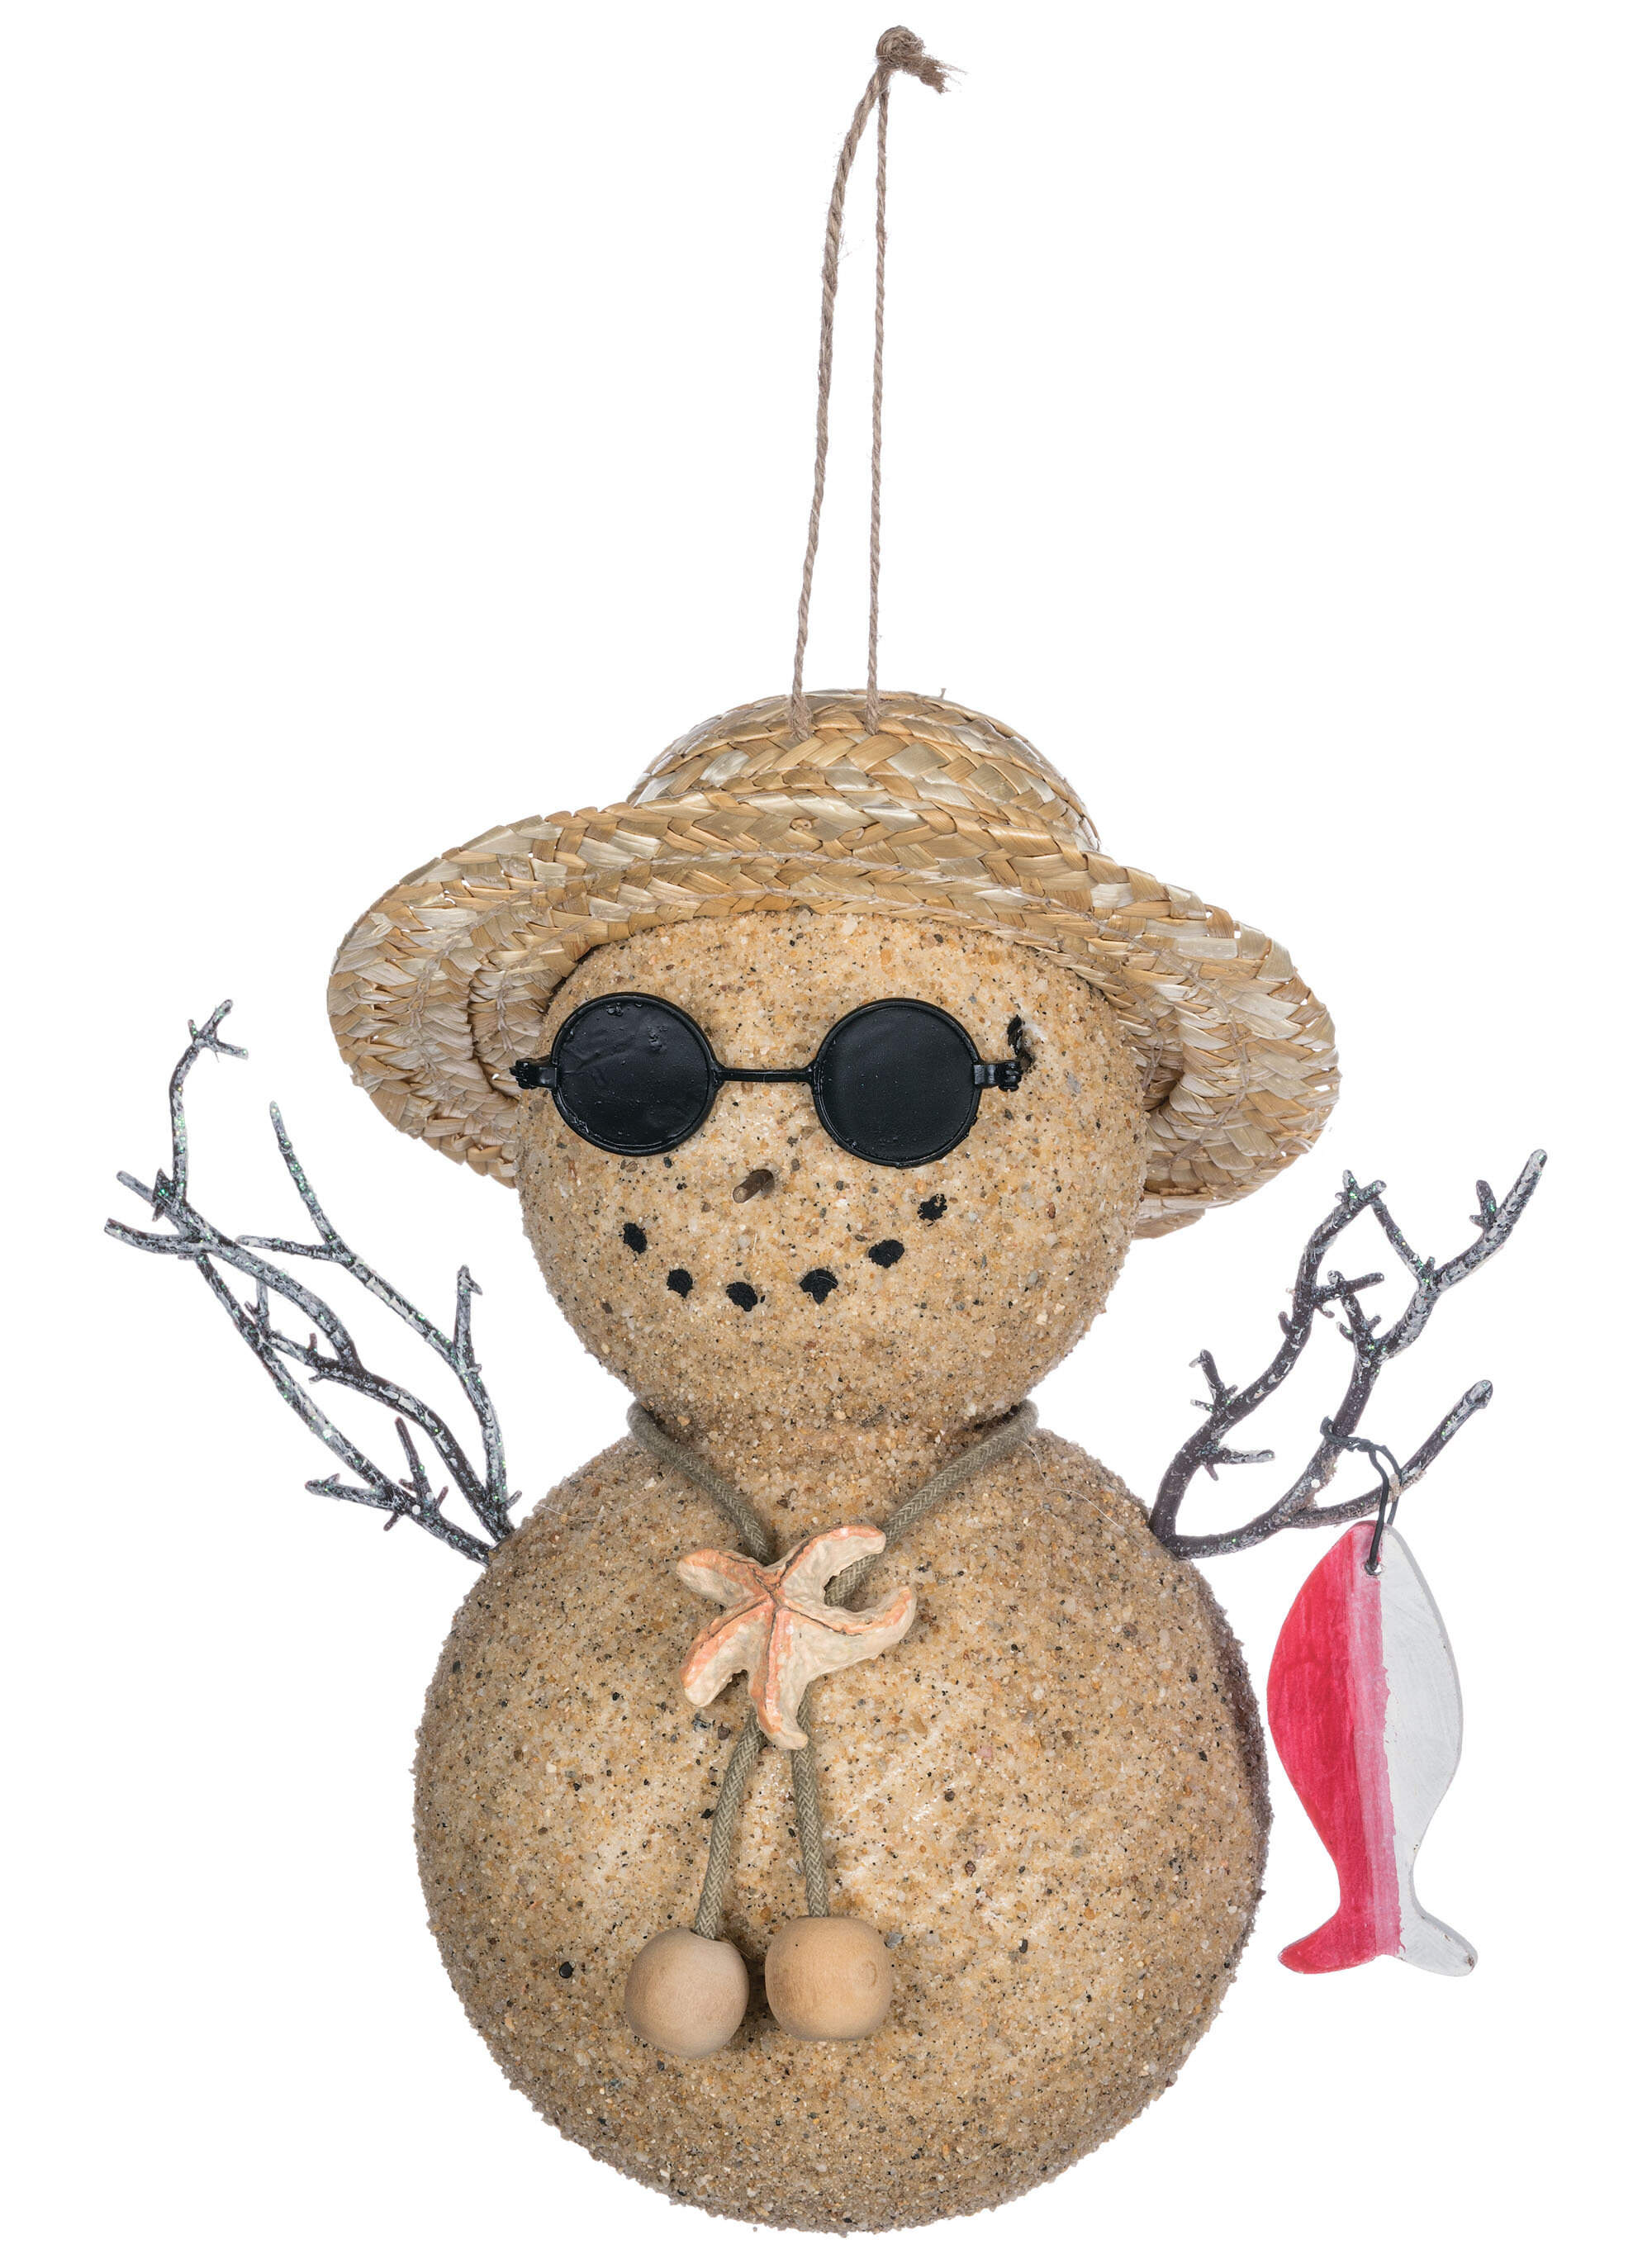 The Holiday Aisle Seaside Snowman Hanging Figurine Ornament Wayfair